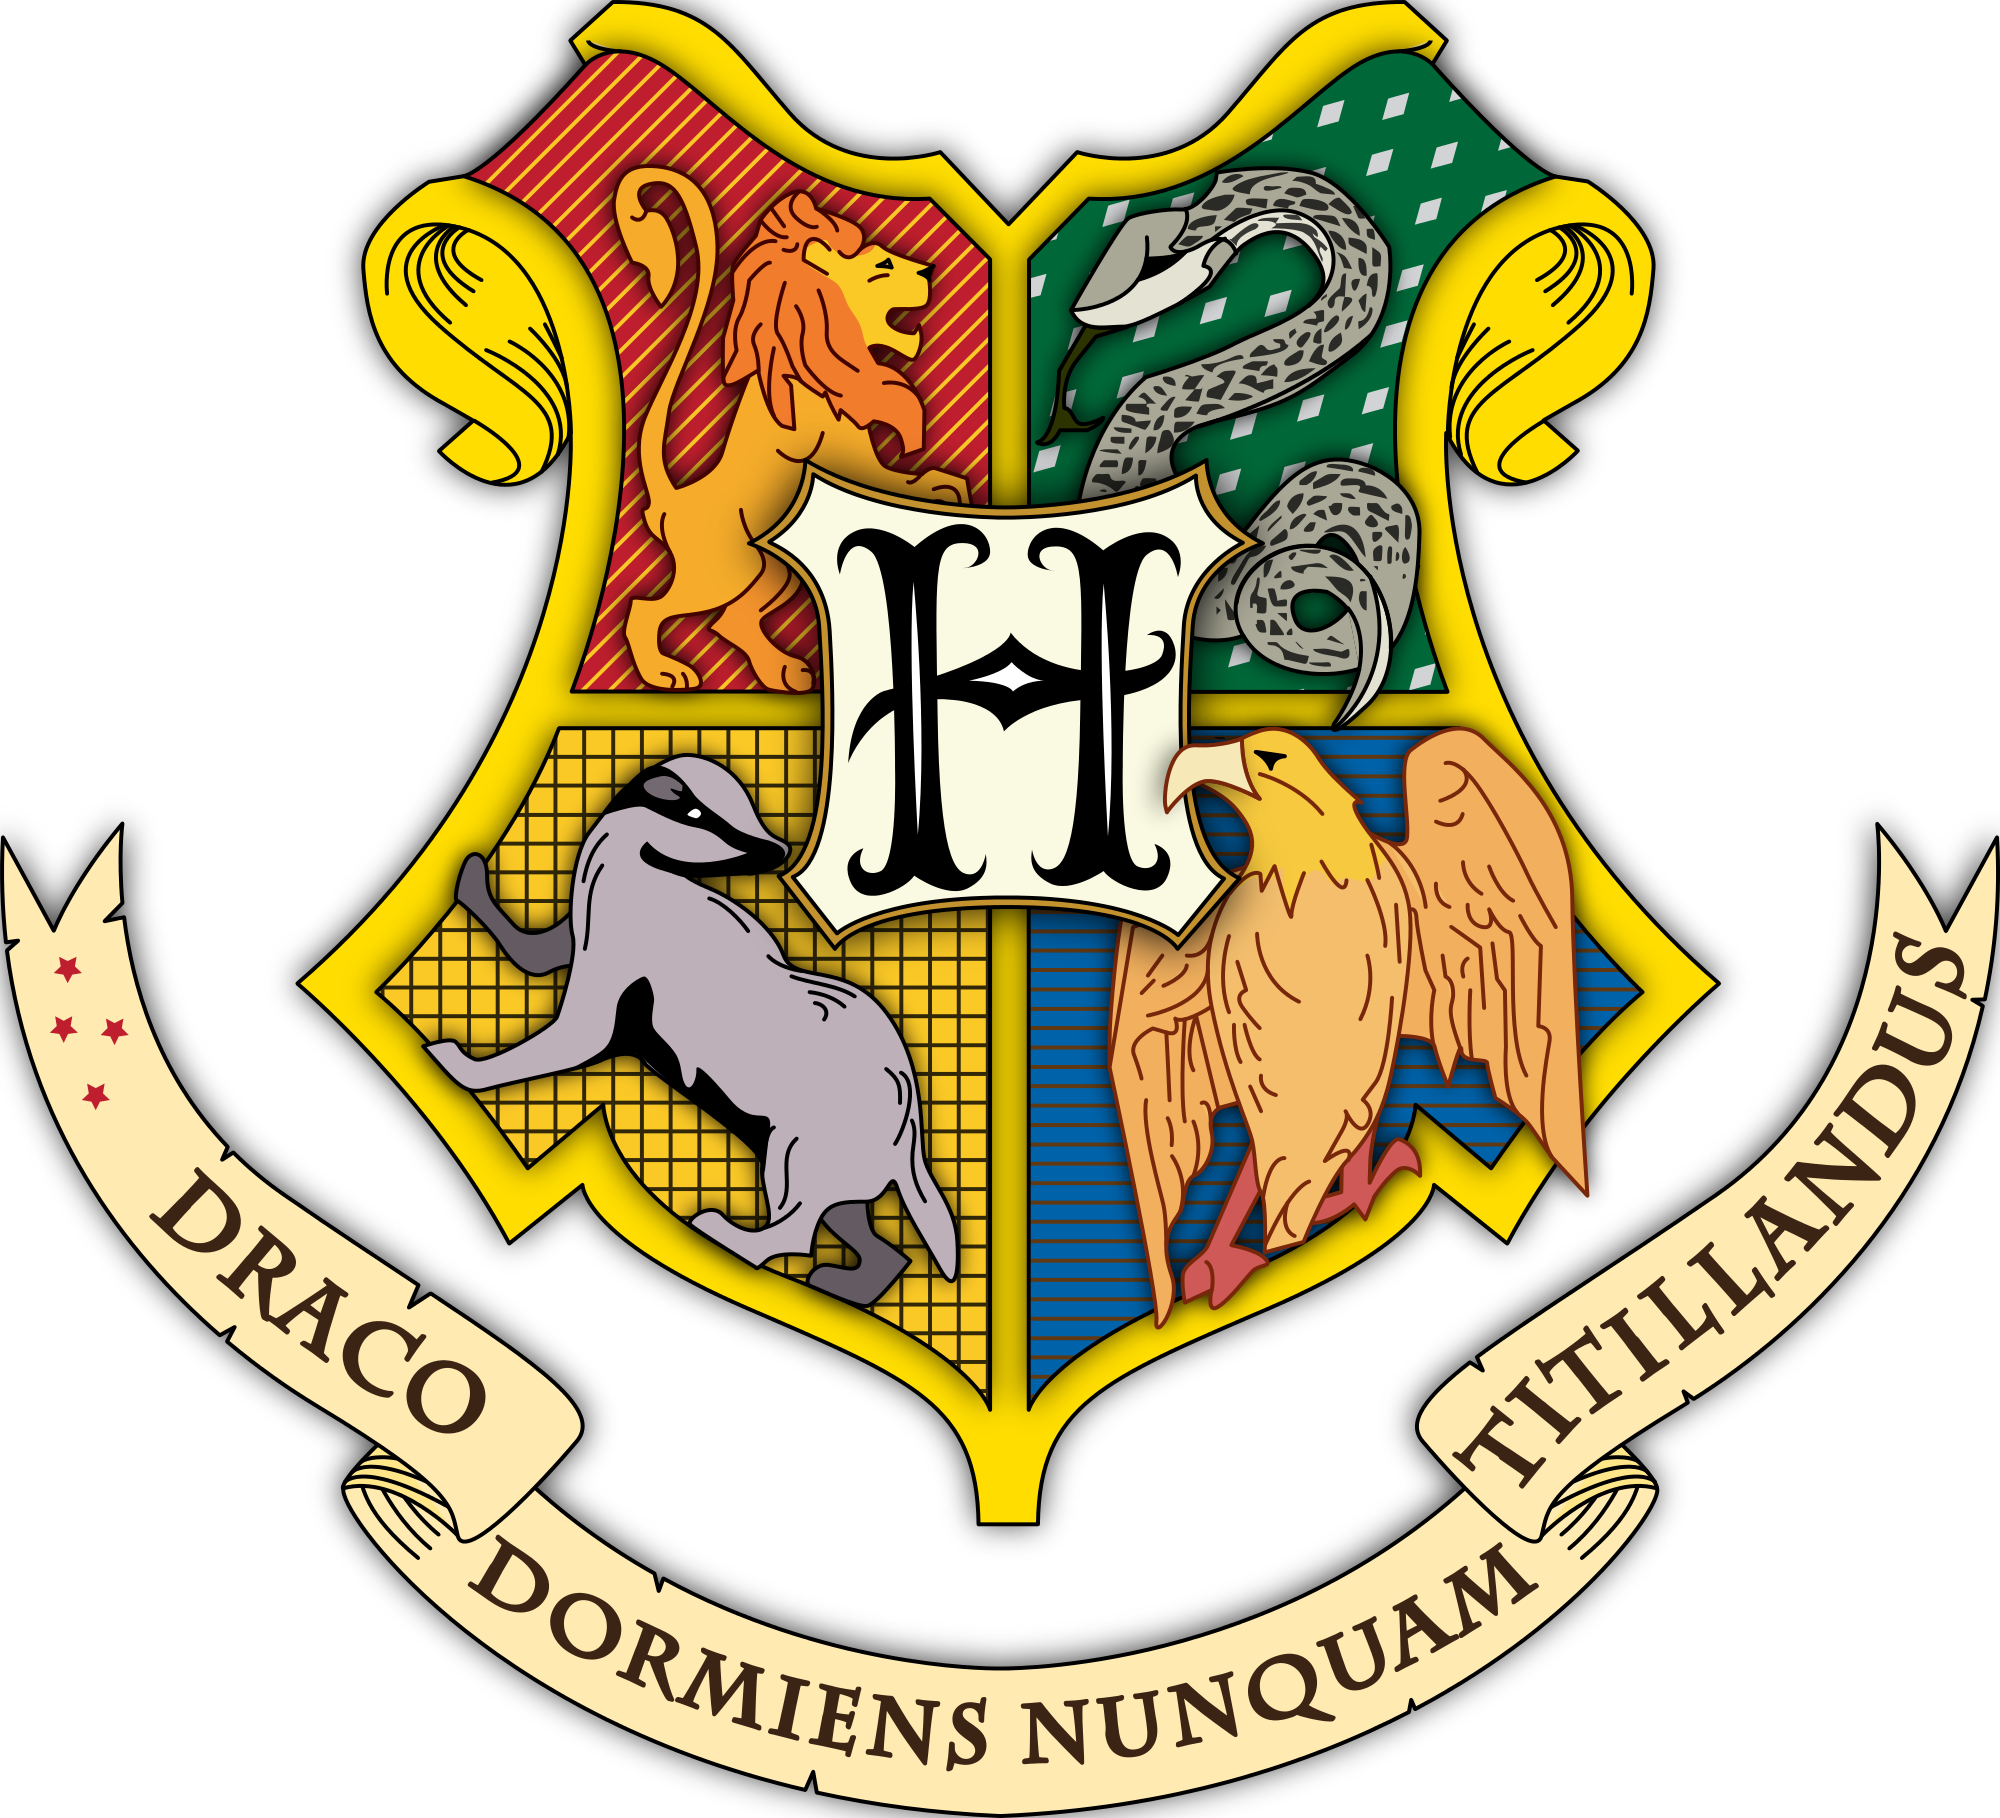 Hogwarts transparent check all. Crest png clear background clipart freeuse download